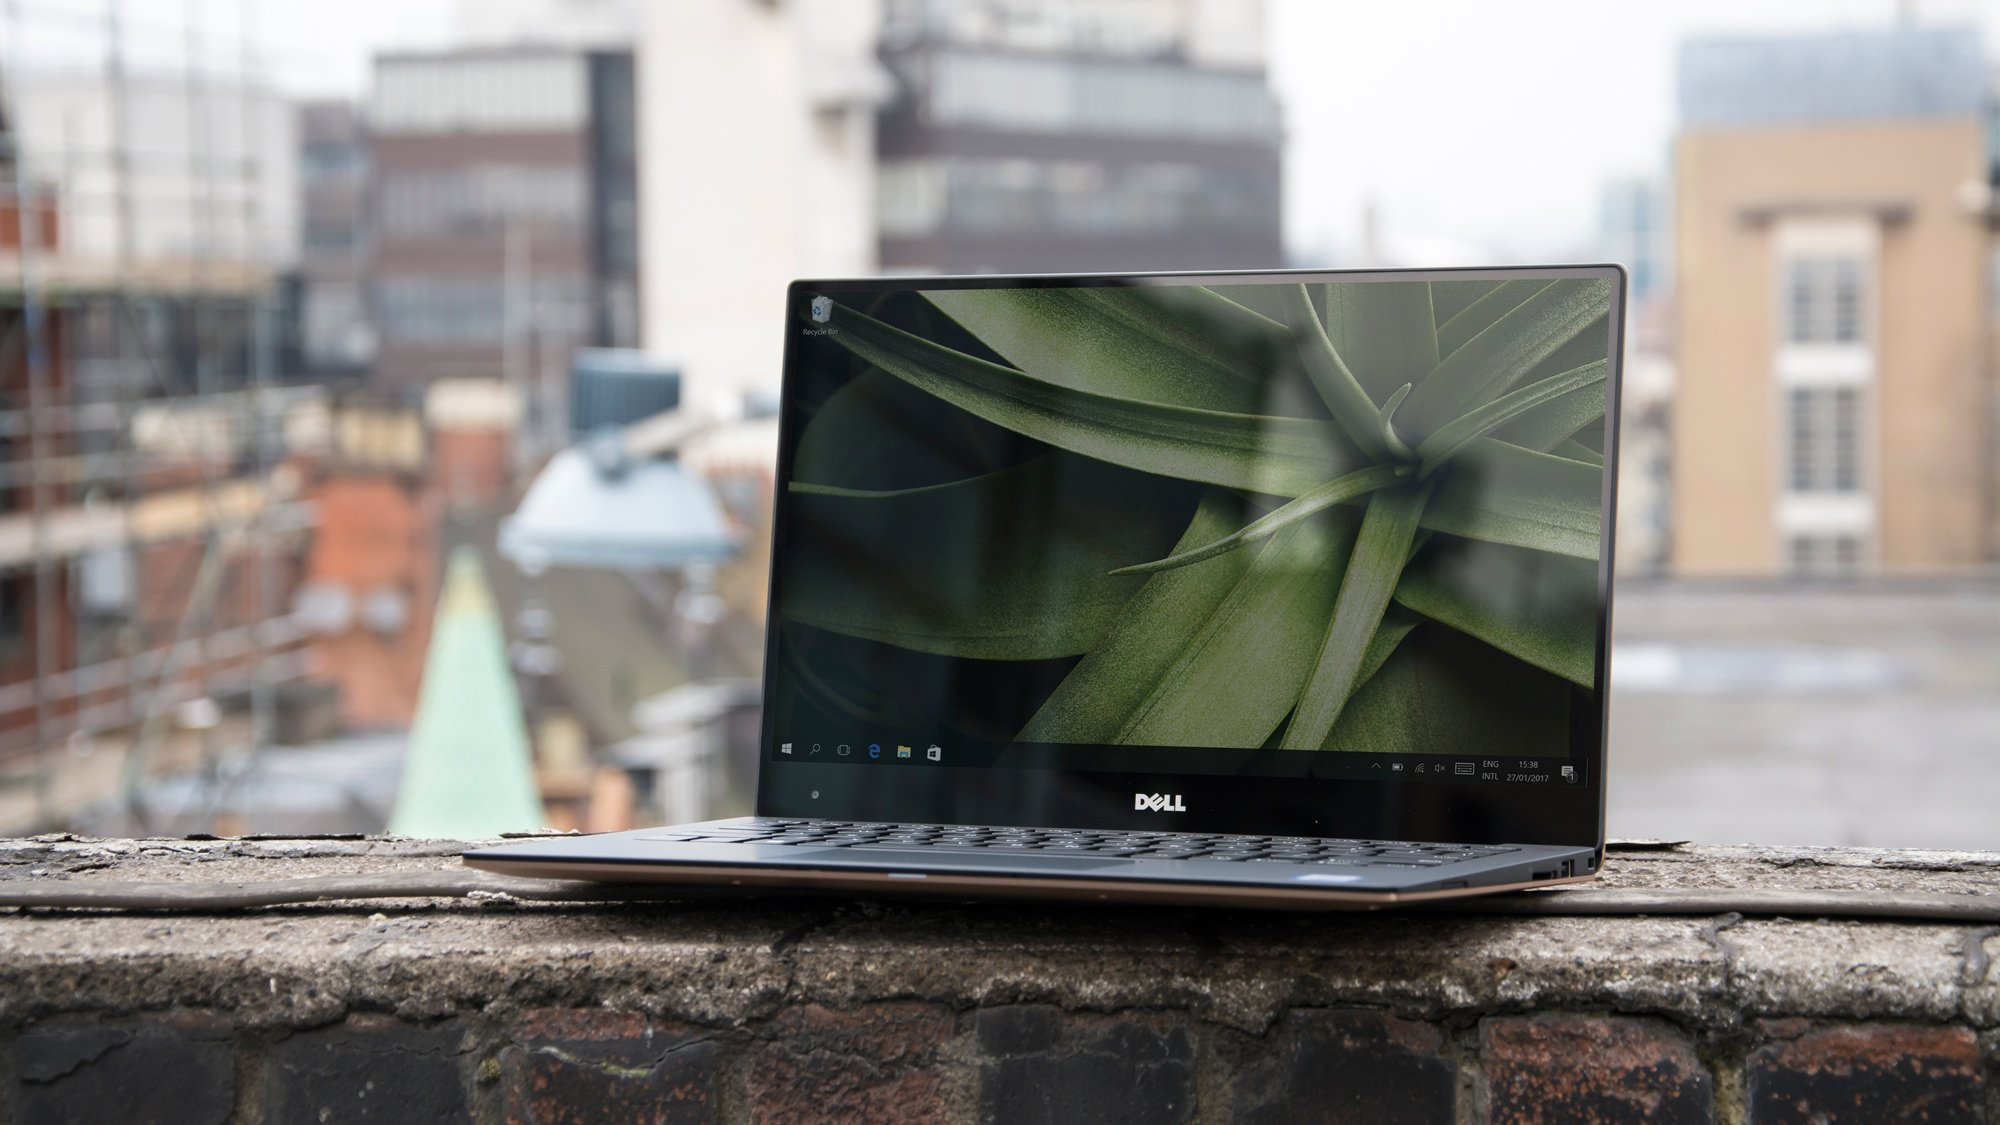 Best Black Friday Dell deals UK: Dell offers AMAZING discounts on